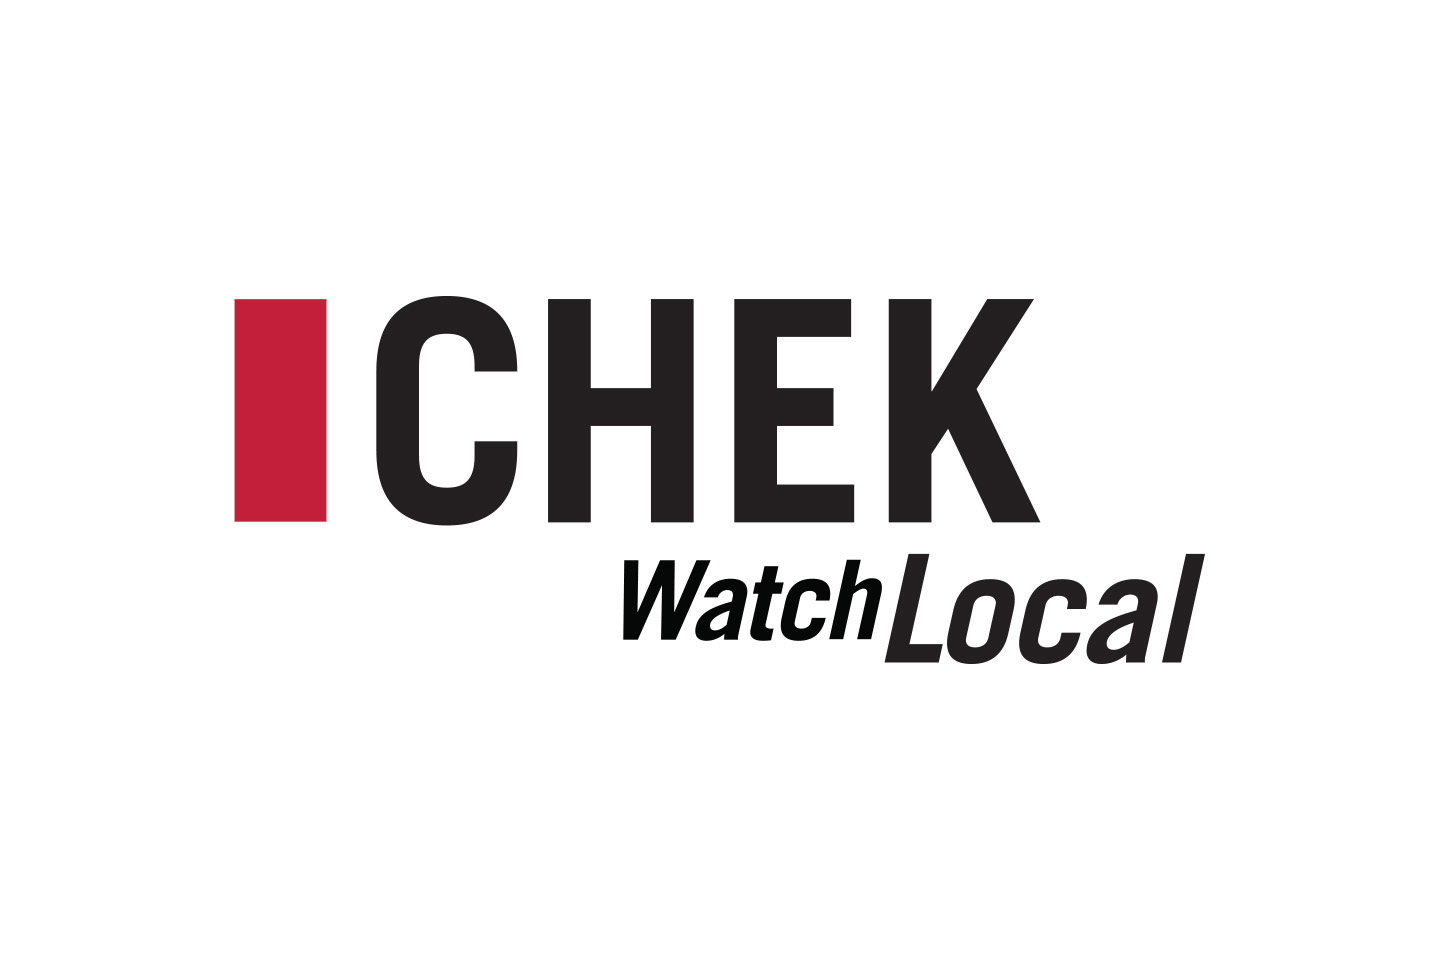 CHEK Watch Local.jpg